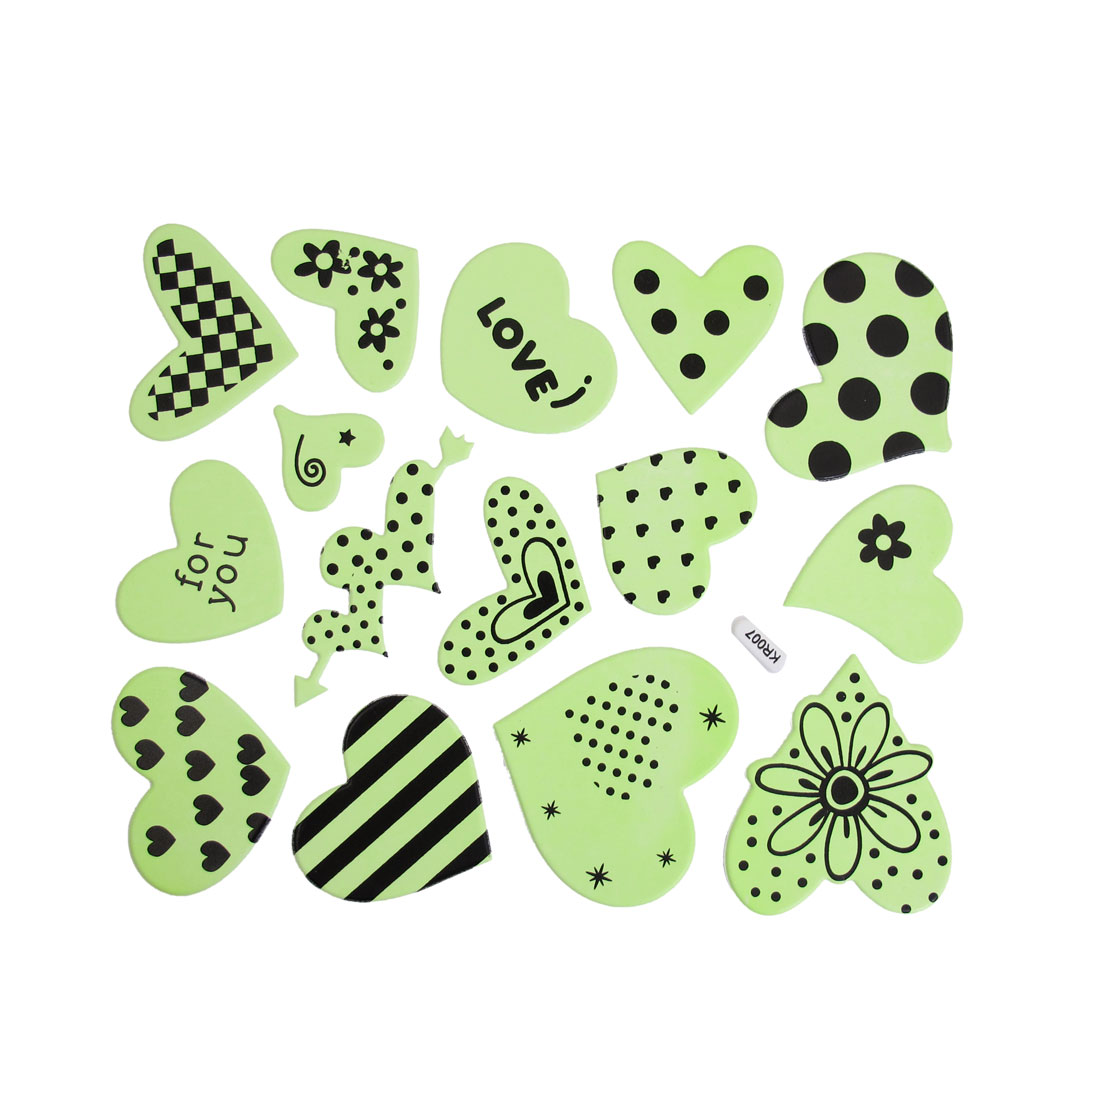 15 Pcs Light Green Black Multi Hearts Shape Luminous Stickers Wall Decor